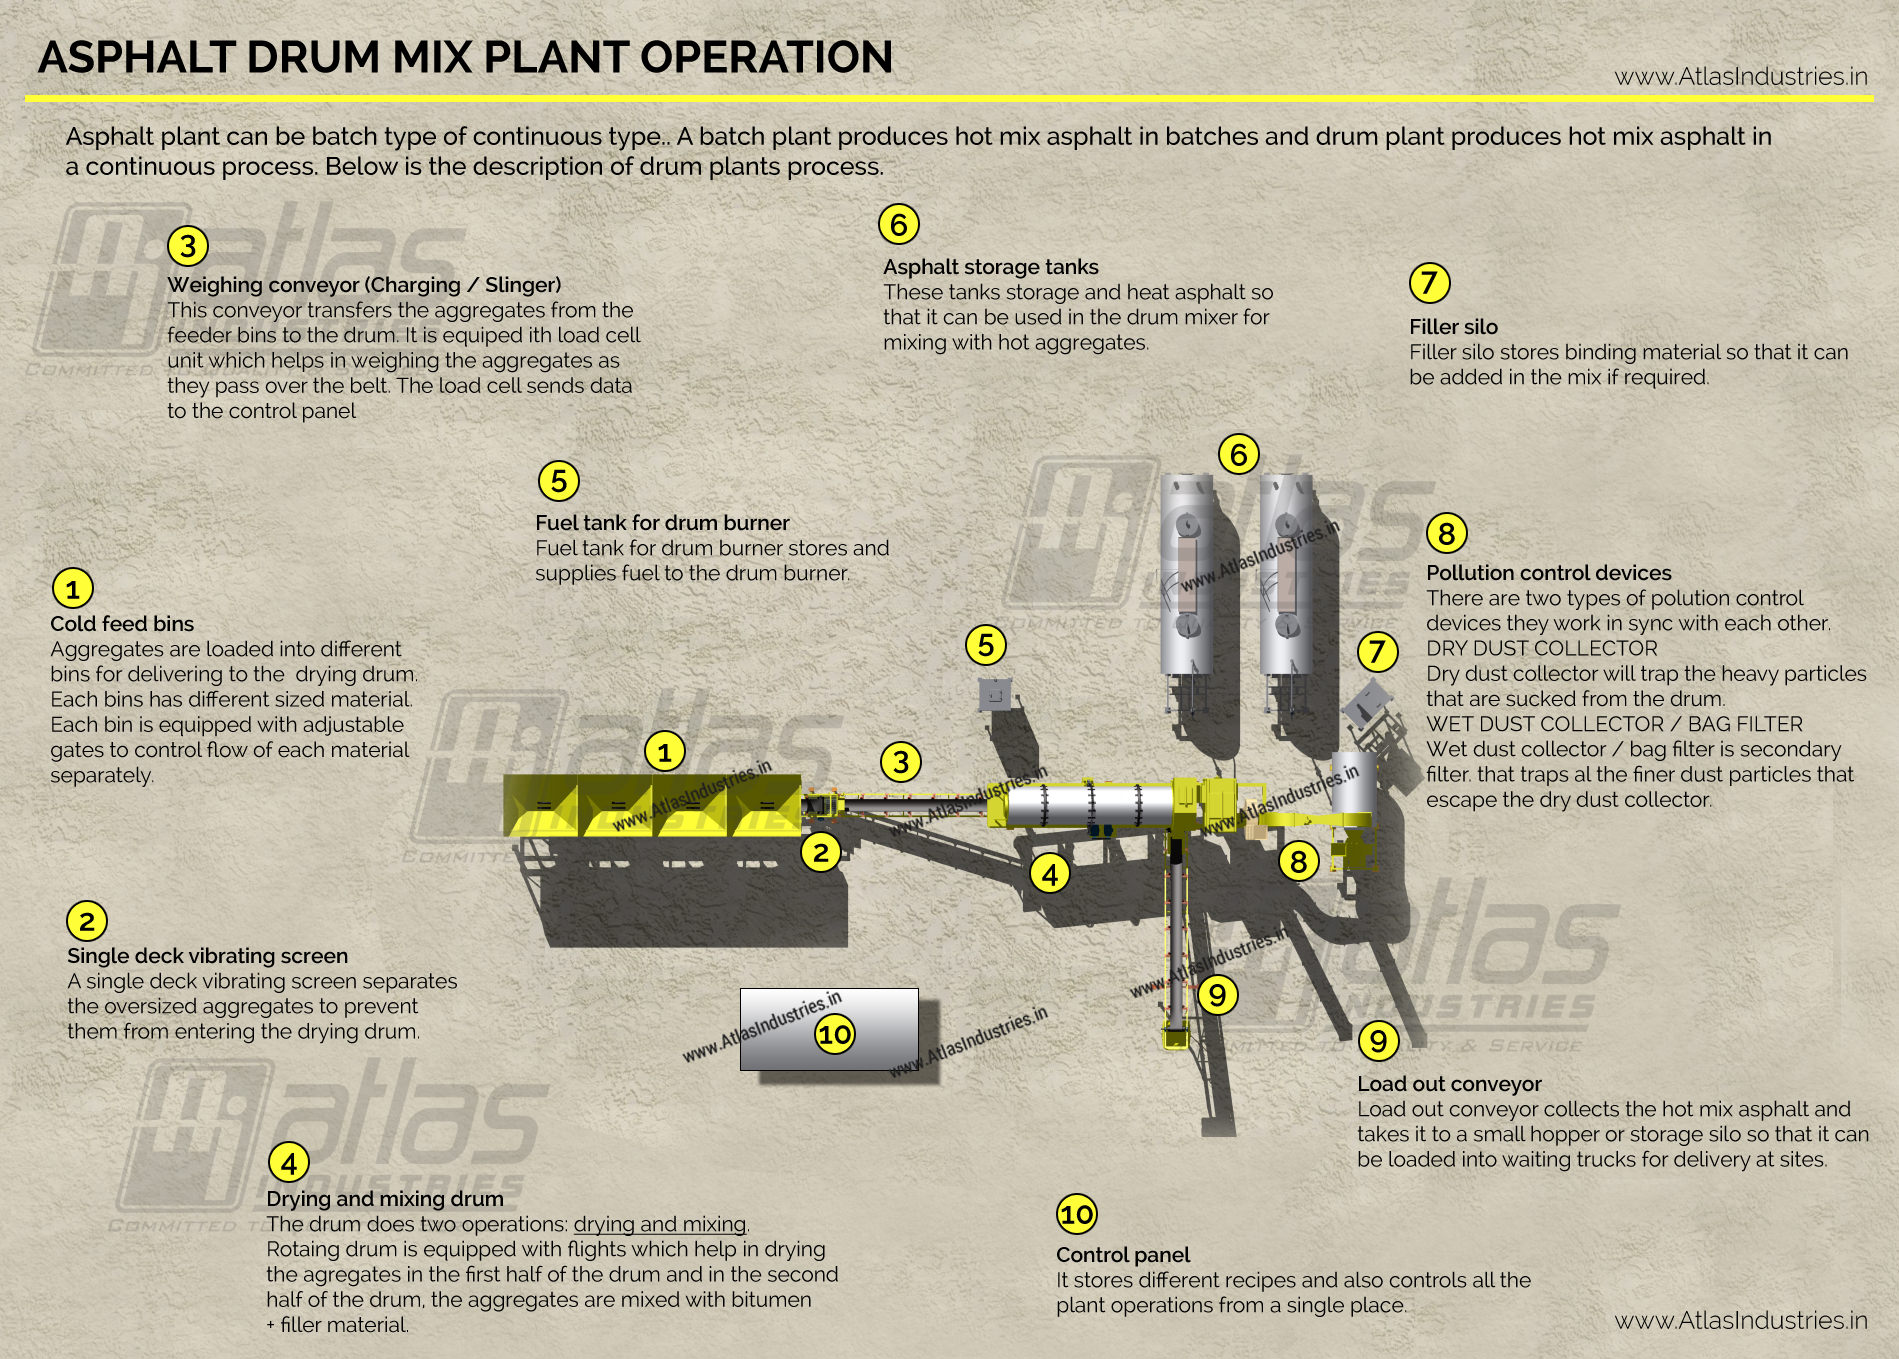 Asphalt drum mix plant process asphalt plant process drum mix plant operation diagram nvjuhfo Gallery